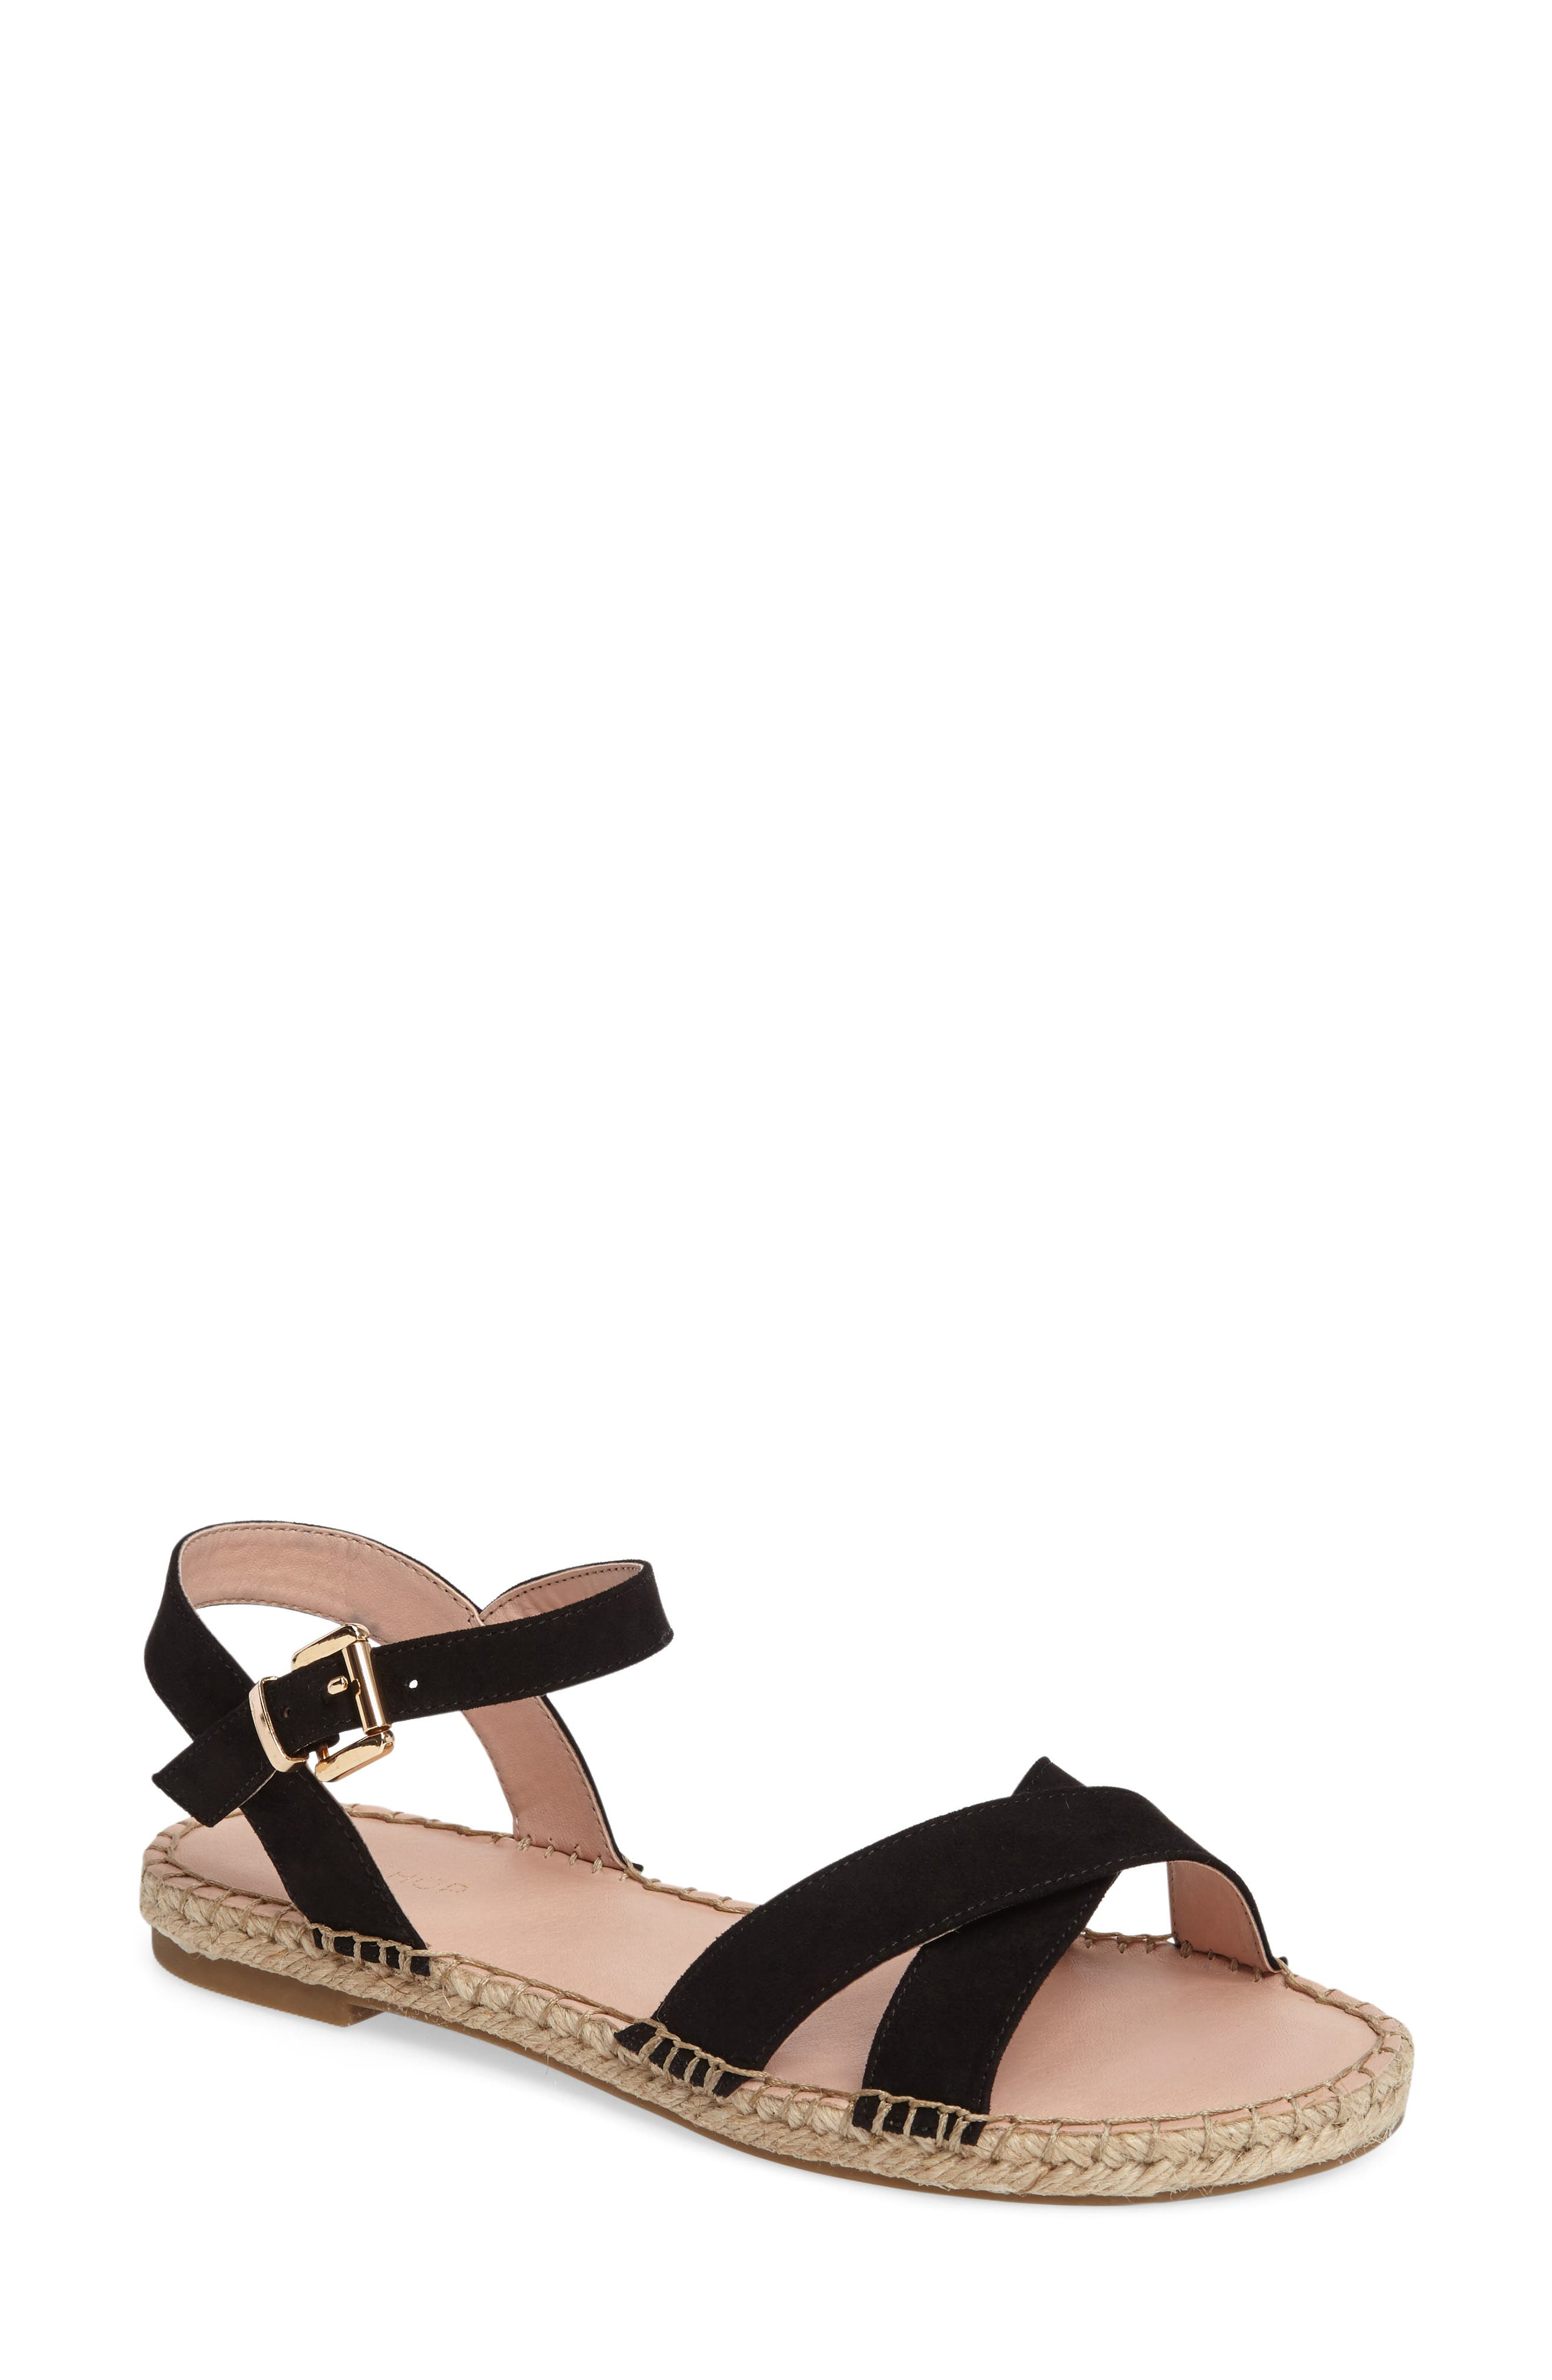 Alternate Image 1 Selected - Topshop Eddy Espadrille Sandal (Women)